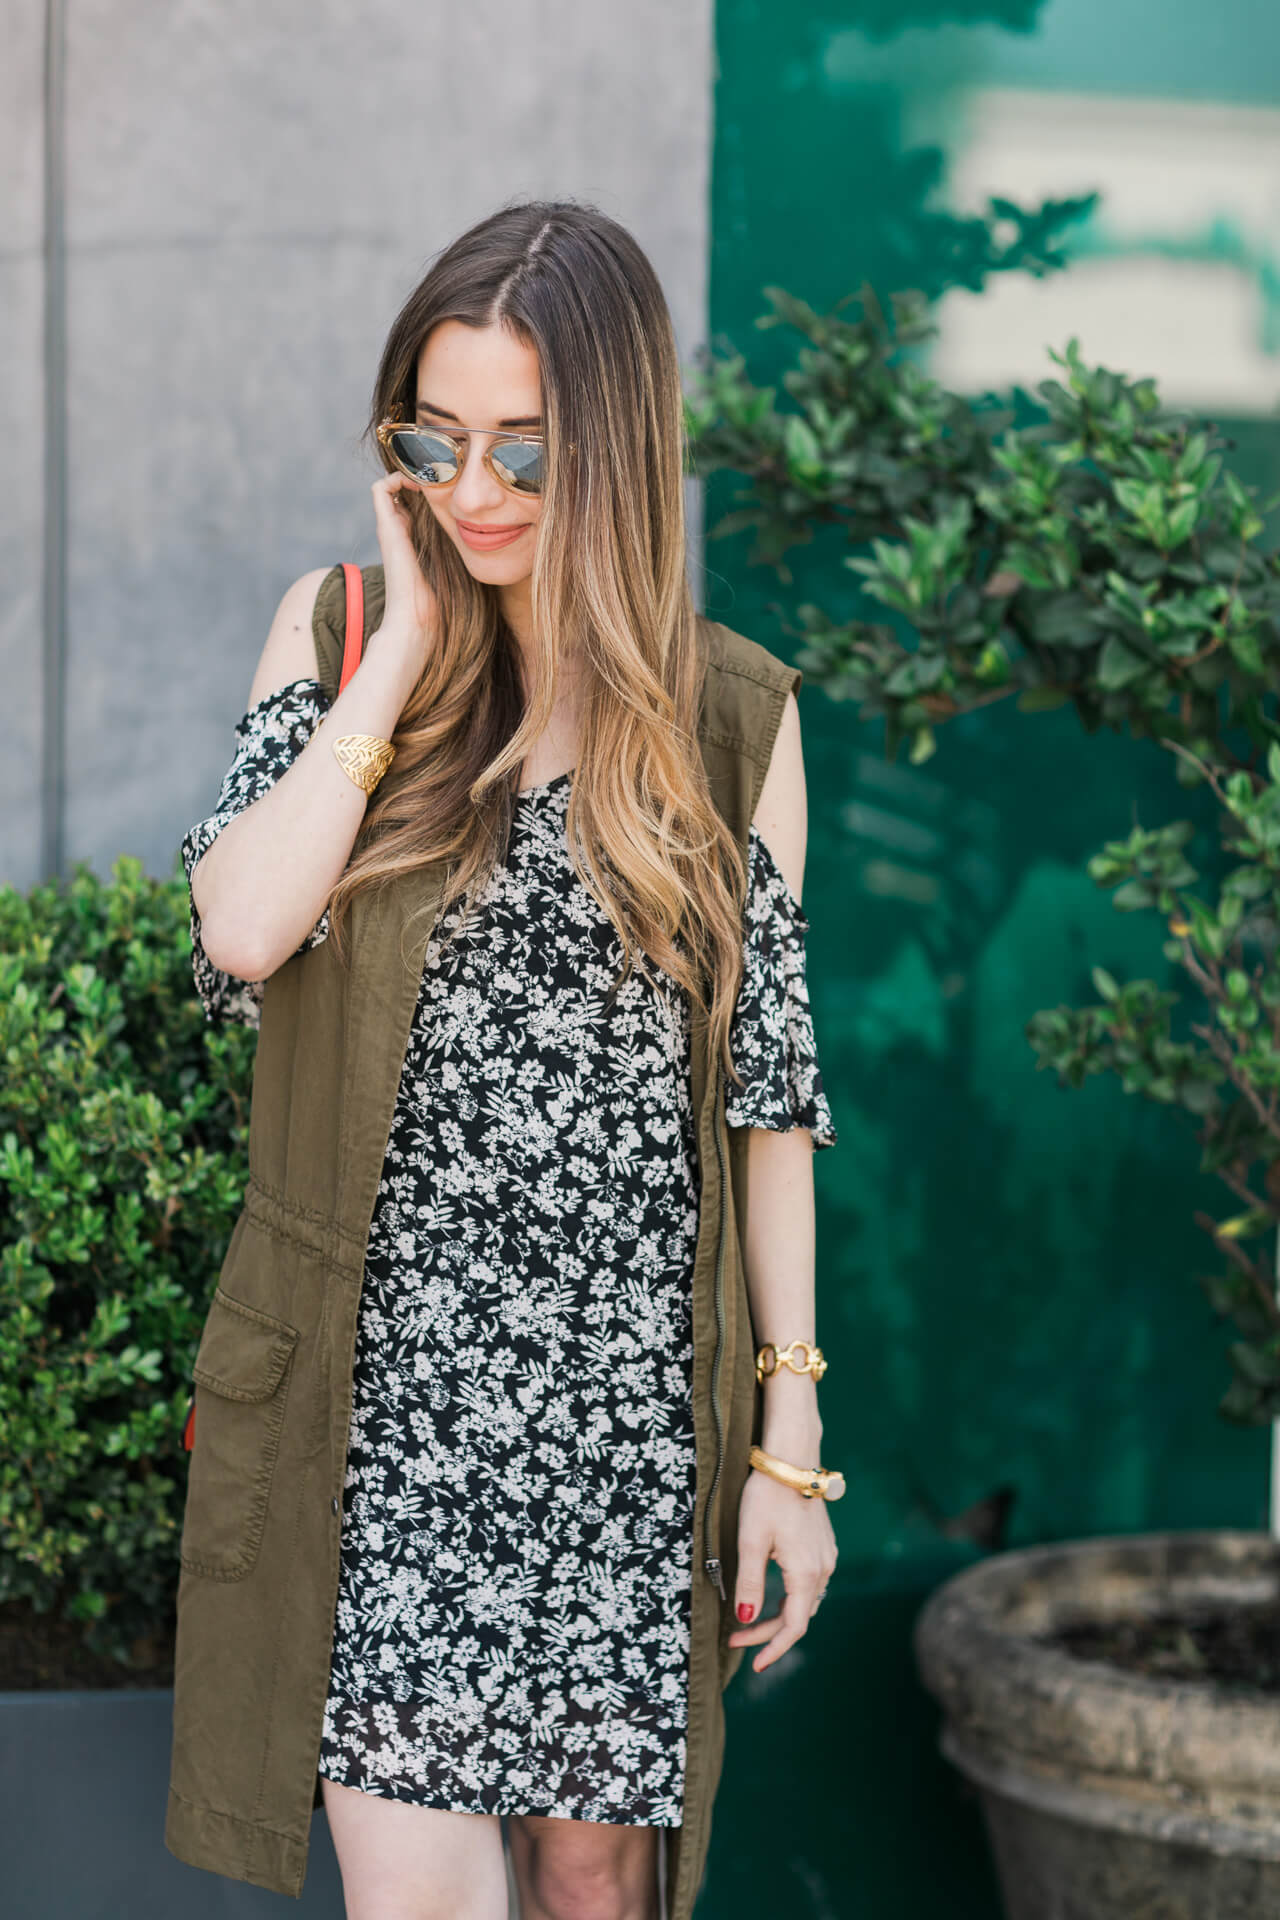 styling a floral cold shoulder dress